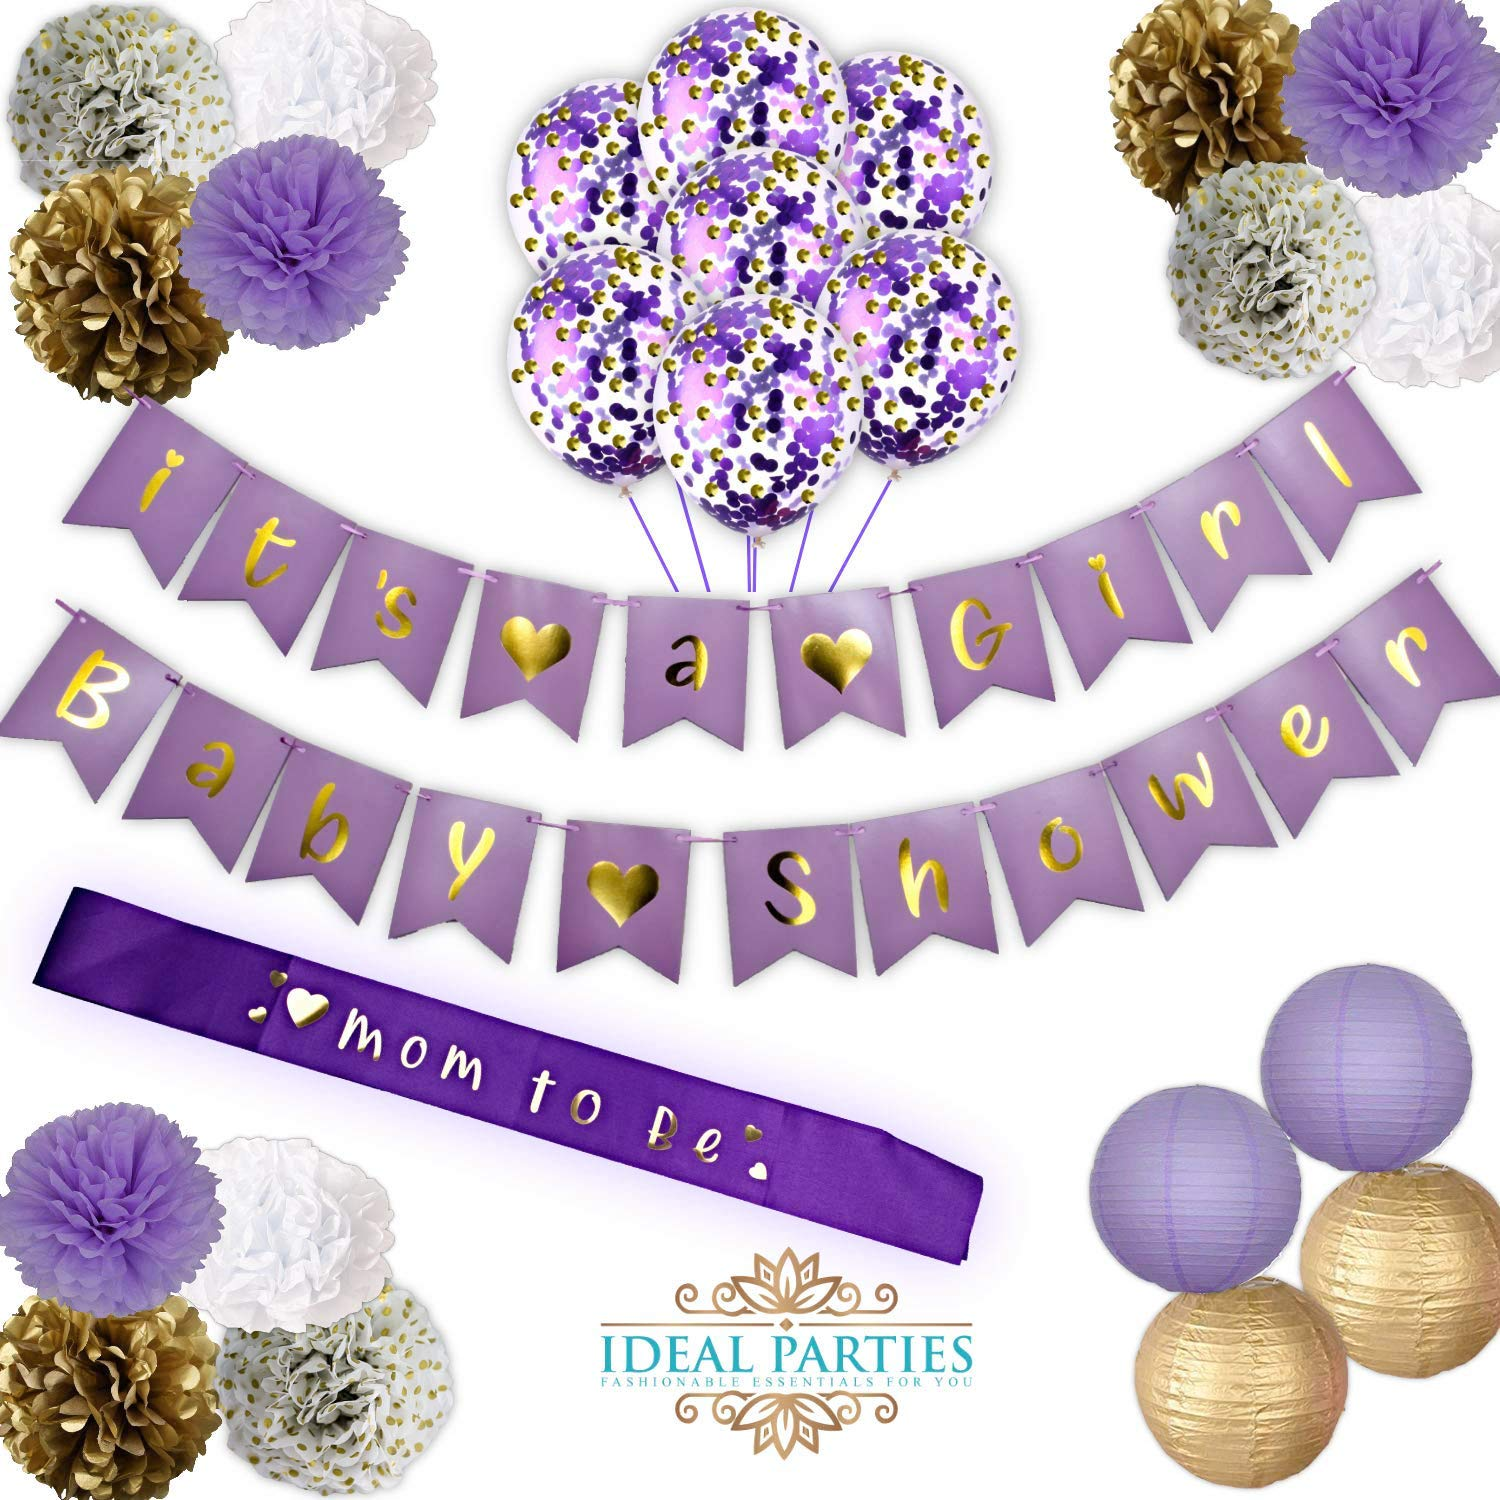 Lavender Baby Shower Decorations set! IT'S A GIRL! Baby shower Banners, Flower PomPoms Gorgeous Light Purple/Gold/White/White with gold dots! Tassel garland,and Lanterns decor for your future Princess